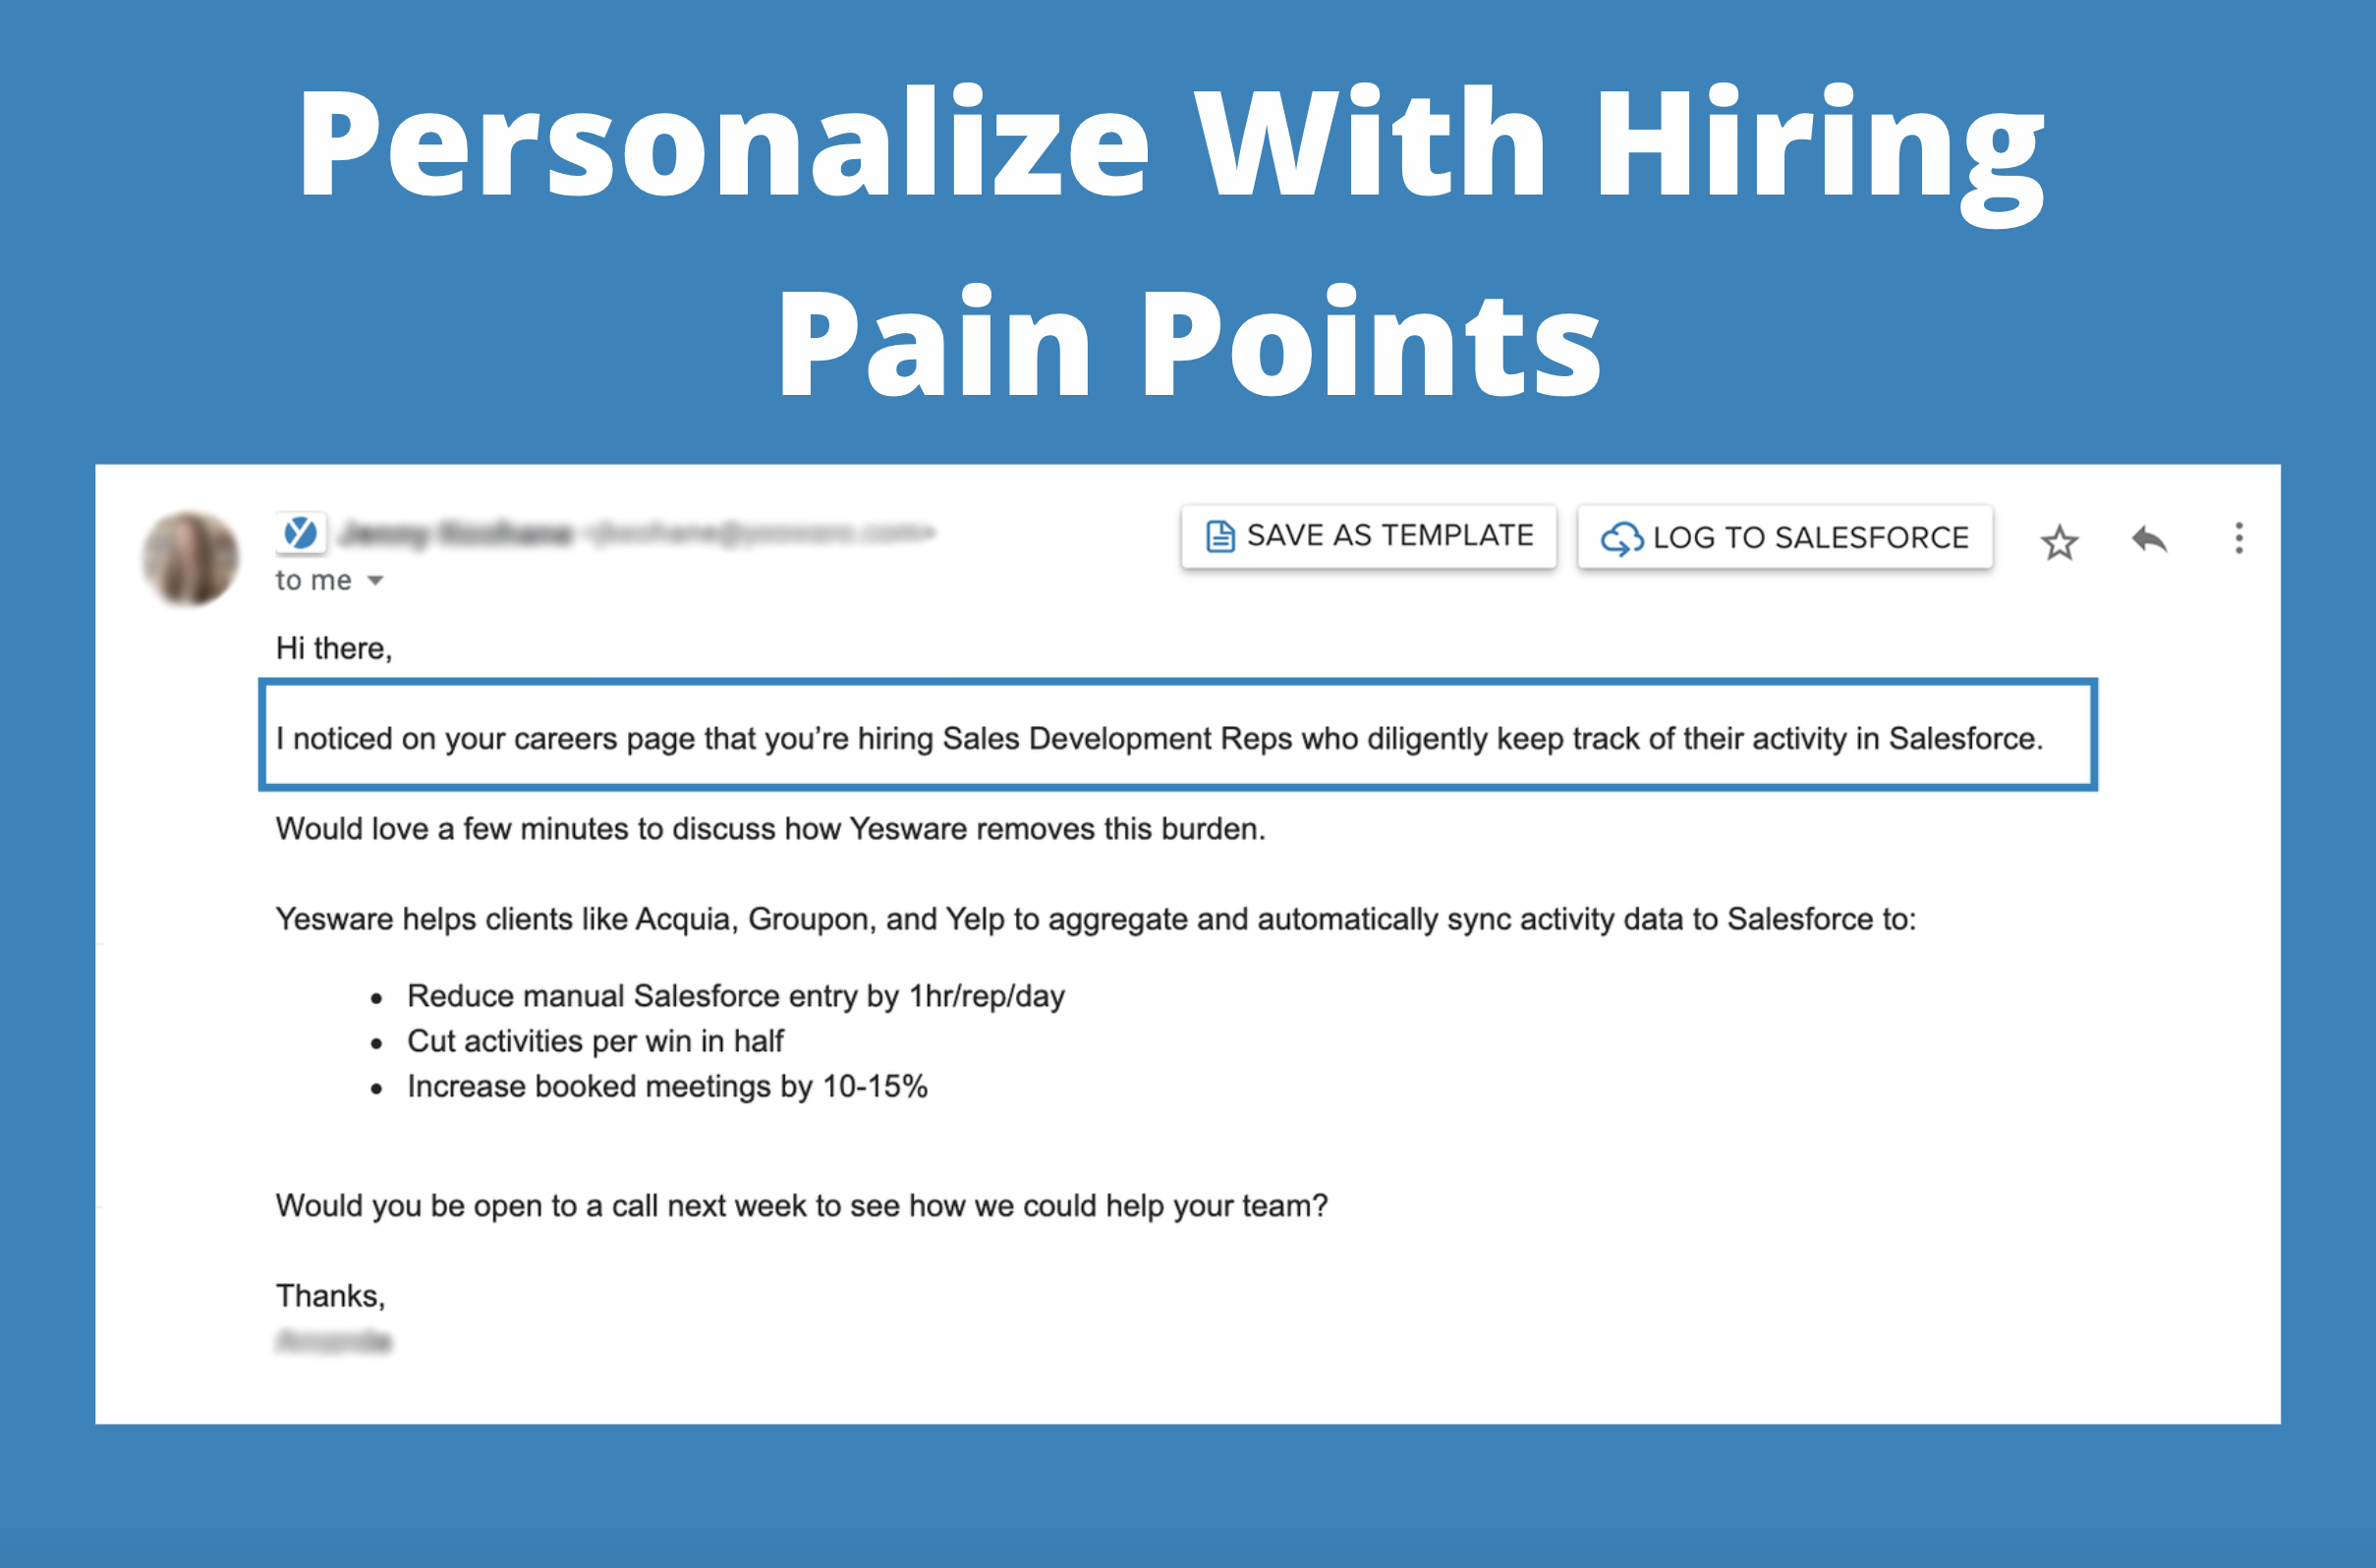 personalized emails: personalize with hiring pain points